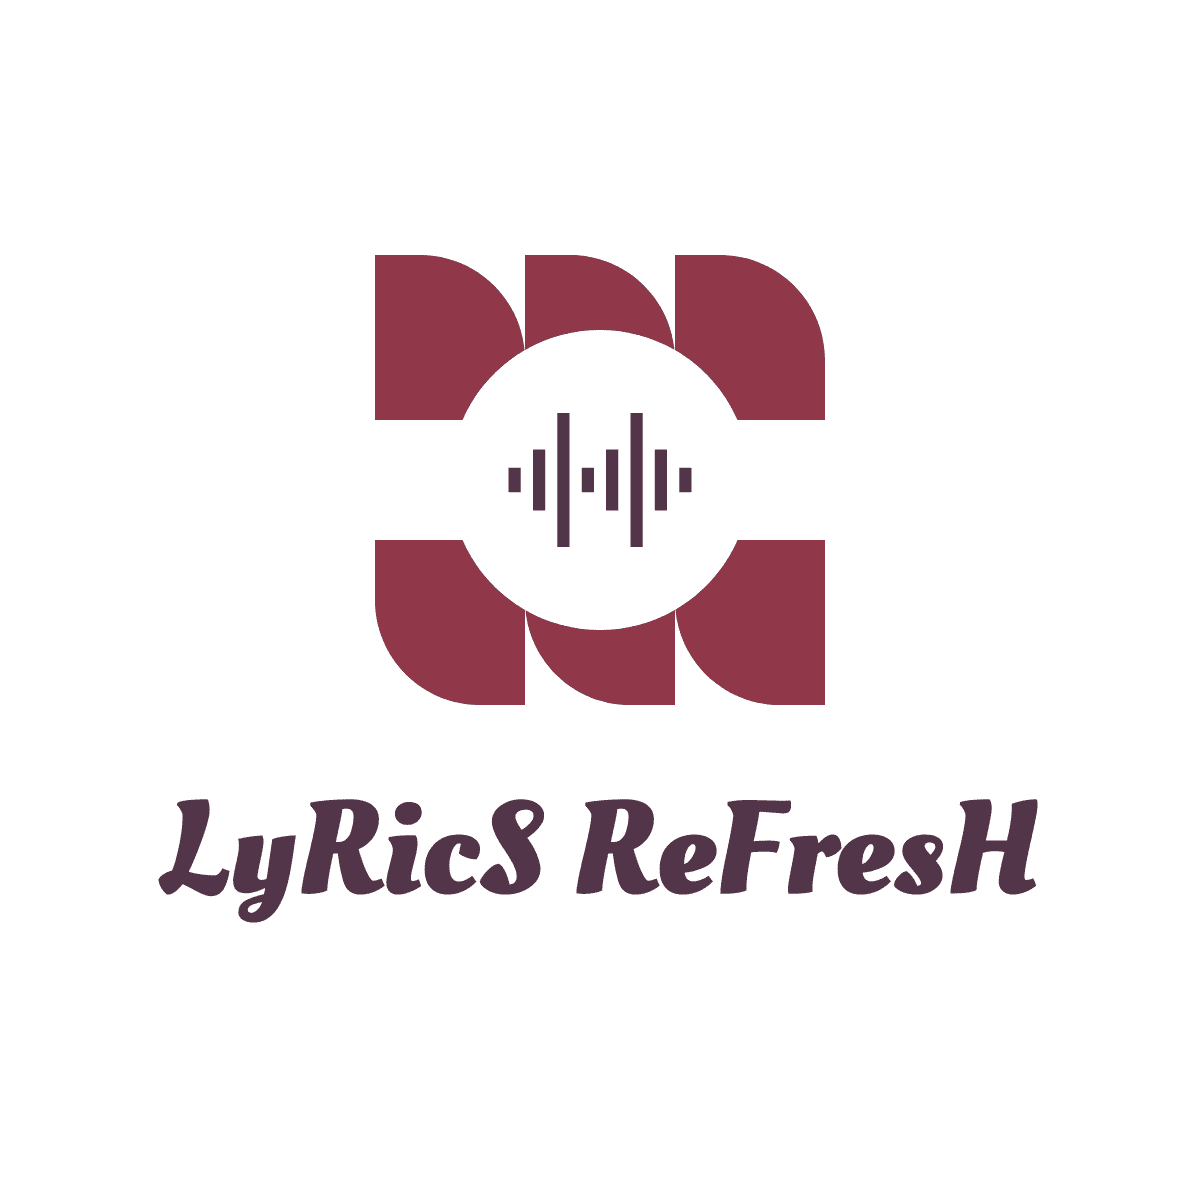 LYRICS TO REFRESH